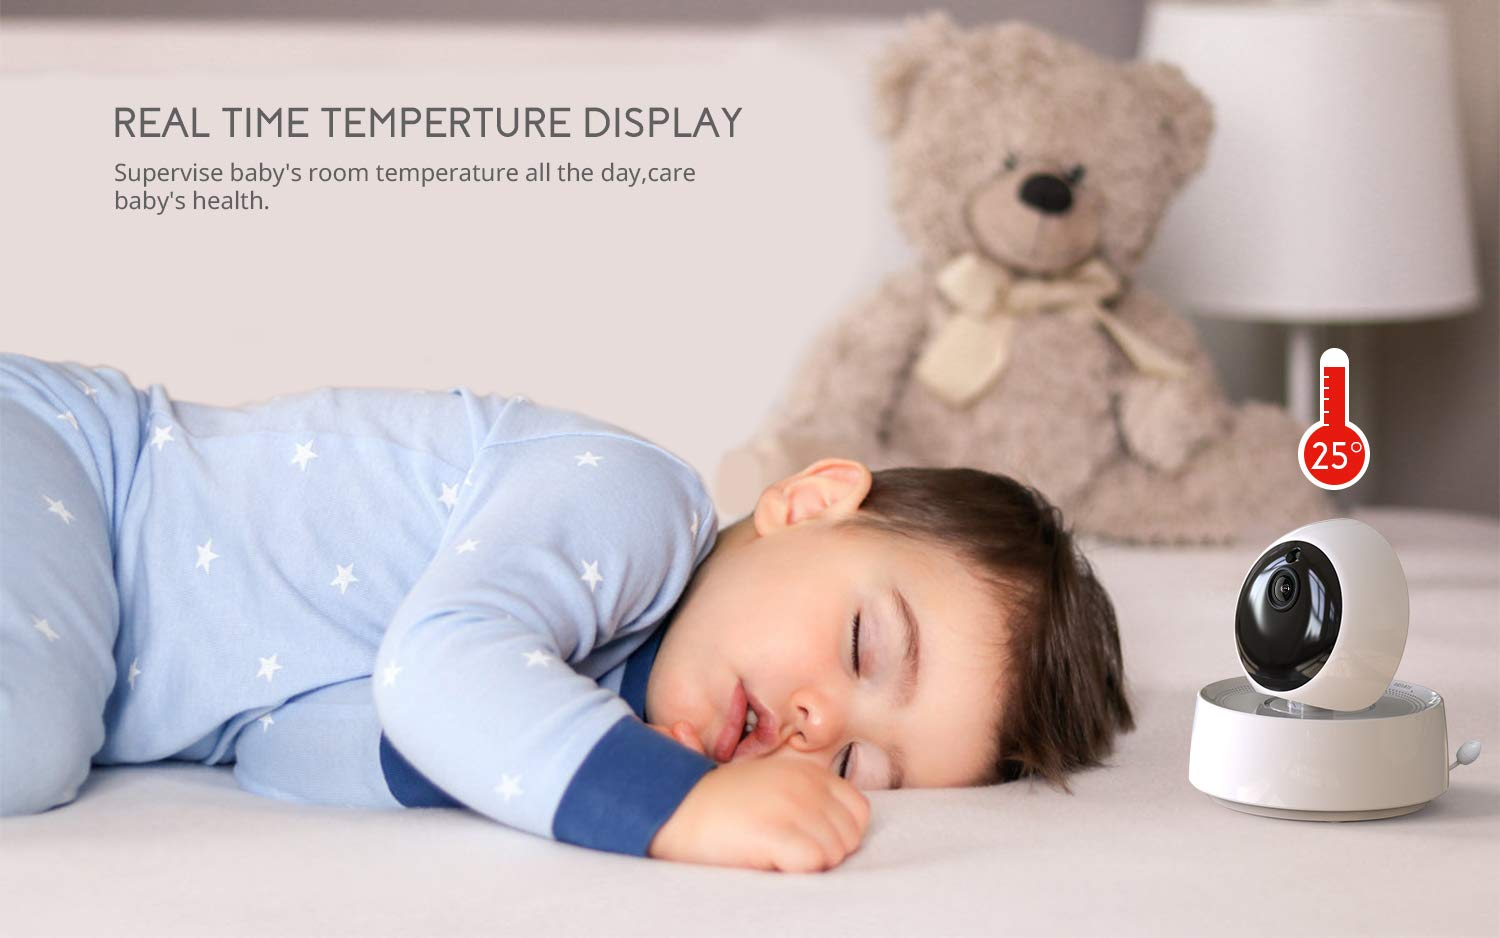 "Baby Monitor, COOAU 5"" Wireless Video Baby Monitor with 1280x720P HD Screen, 2000mAh Rechargeable Battery, Support Two-Way Audio, Infrared Night Vision, Temperature Monitor, 2.4GHz Safe Connection COOAU 👶 5"" 1280*720P HD LCD Screen with 1 Million Pixel Camera: COOAU baby monitor comes with a high quality screen and camera, bring a crystal clear view, no grainy and washed out, even in dark. 👶 Pan Tilt & 2X Zoom-in: You can adjust the angle via 355*120 degree pan/tilt remote control, zoom right in and see if your baby's eyes were opened or closed without any issue. 👶 Infrared Invisible Night Vision: Using 940nm infrared light, effectively protect your baby's eyes. Up to 5 meters night vision viewing distance, pick up images of your baby in dark or low light conditions. 8"